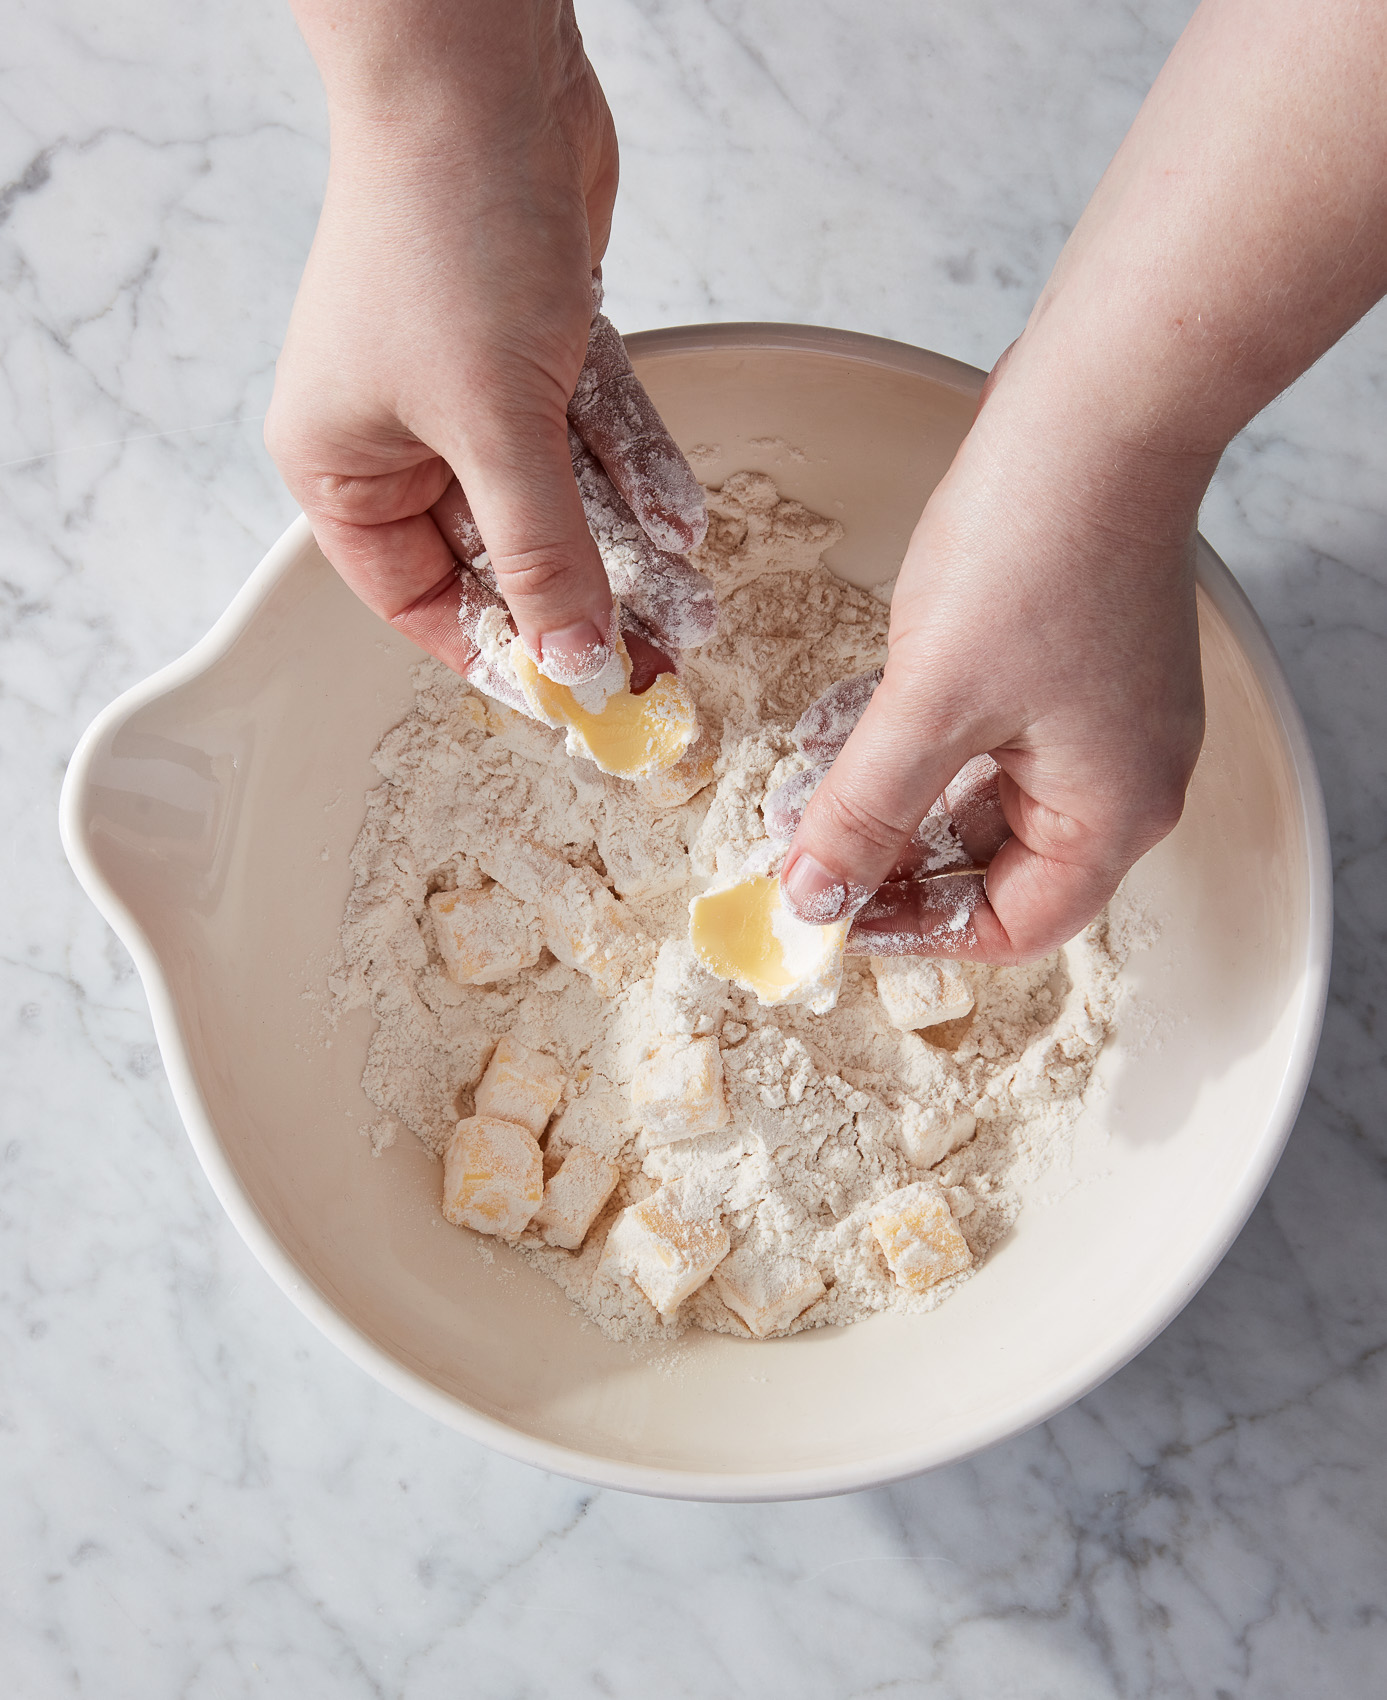 CH1_how-to-mix-pie-dough_erin-mcdowell_book-on-pie_2019-10-28_mark-weinberg_0141